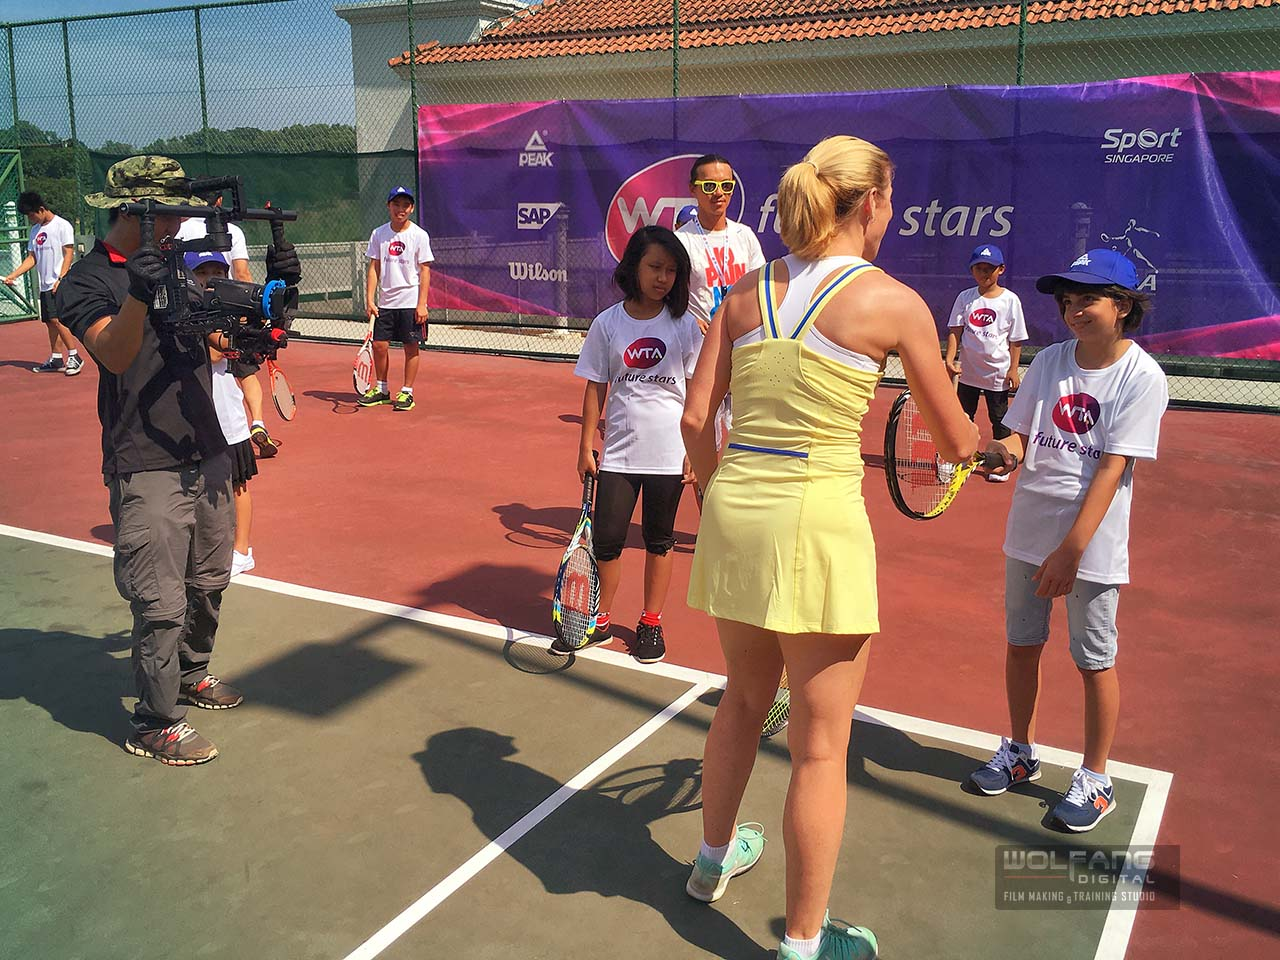 WolFang Digital DJI Ronin gimbal services at World Tennis Association WTA workshop